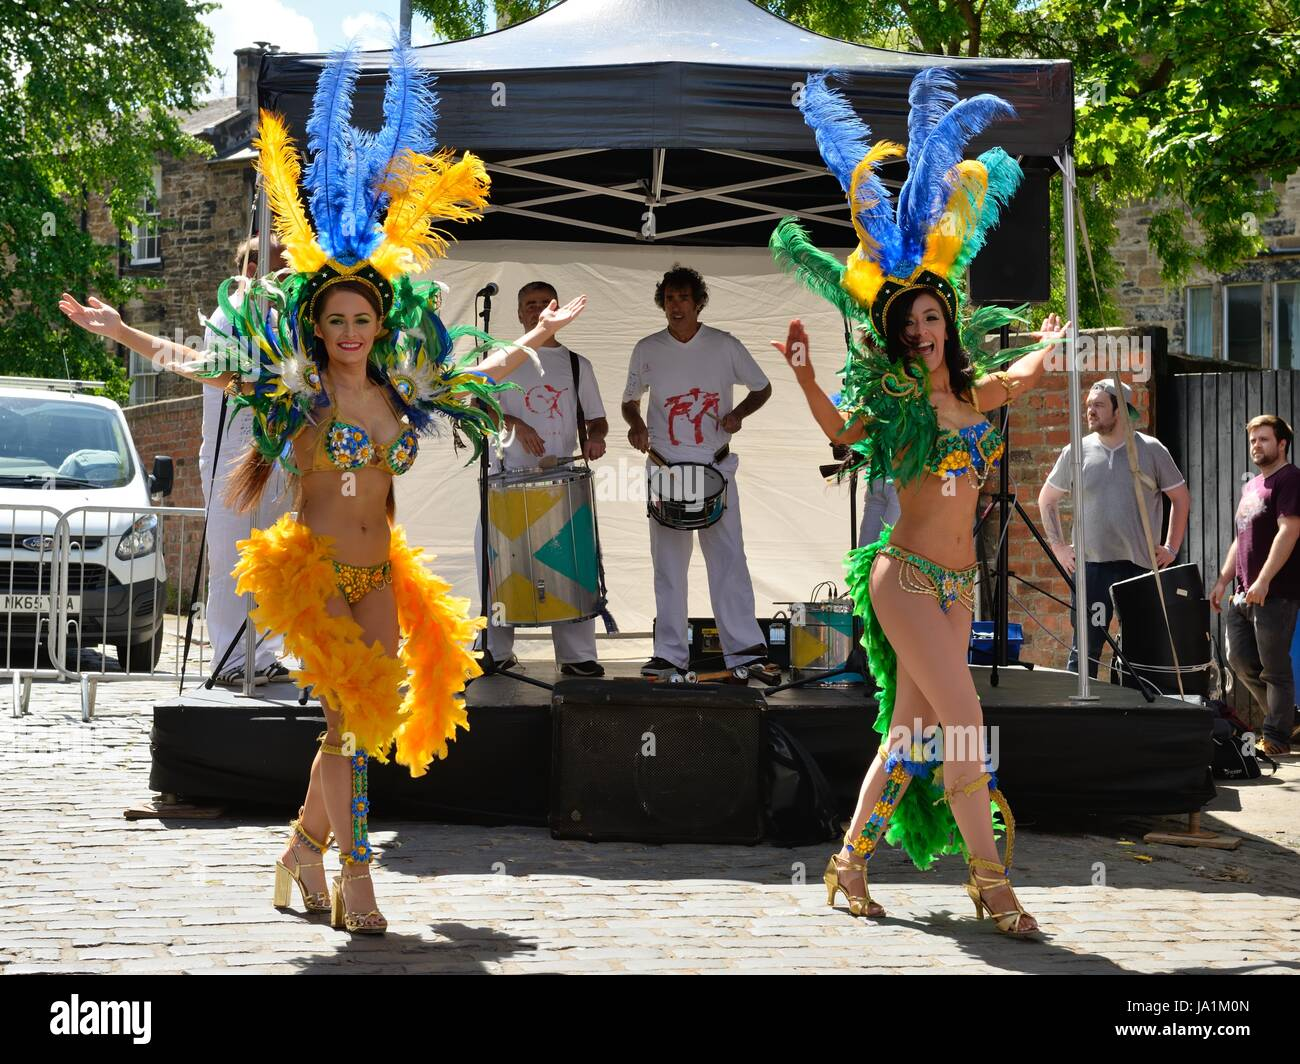 Glasgow, UK. 4th June, 2017. The west end festival got underway today with street performers, music, dance, food - Stock Image